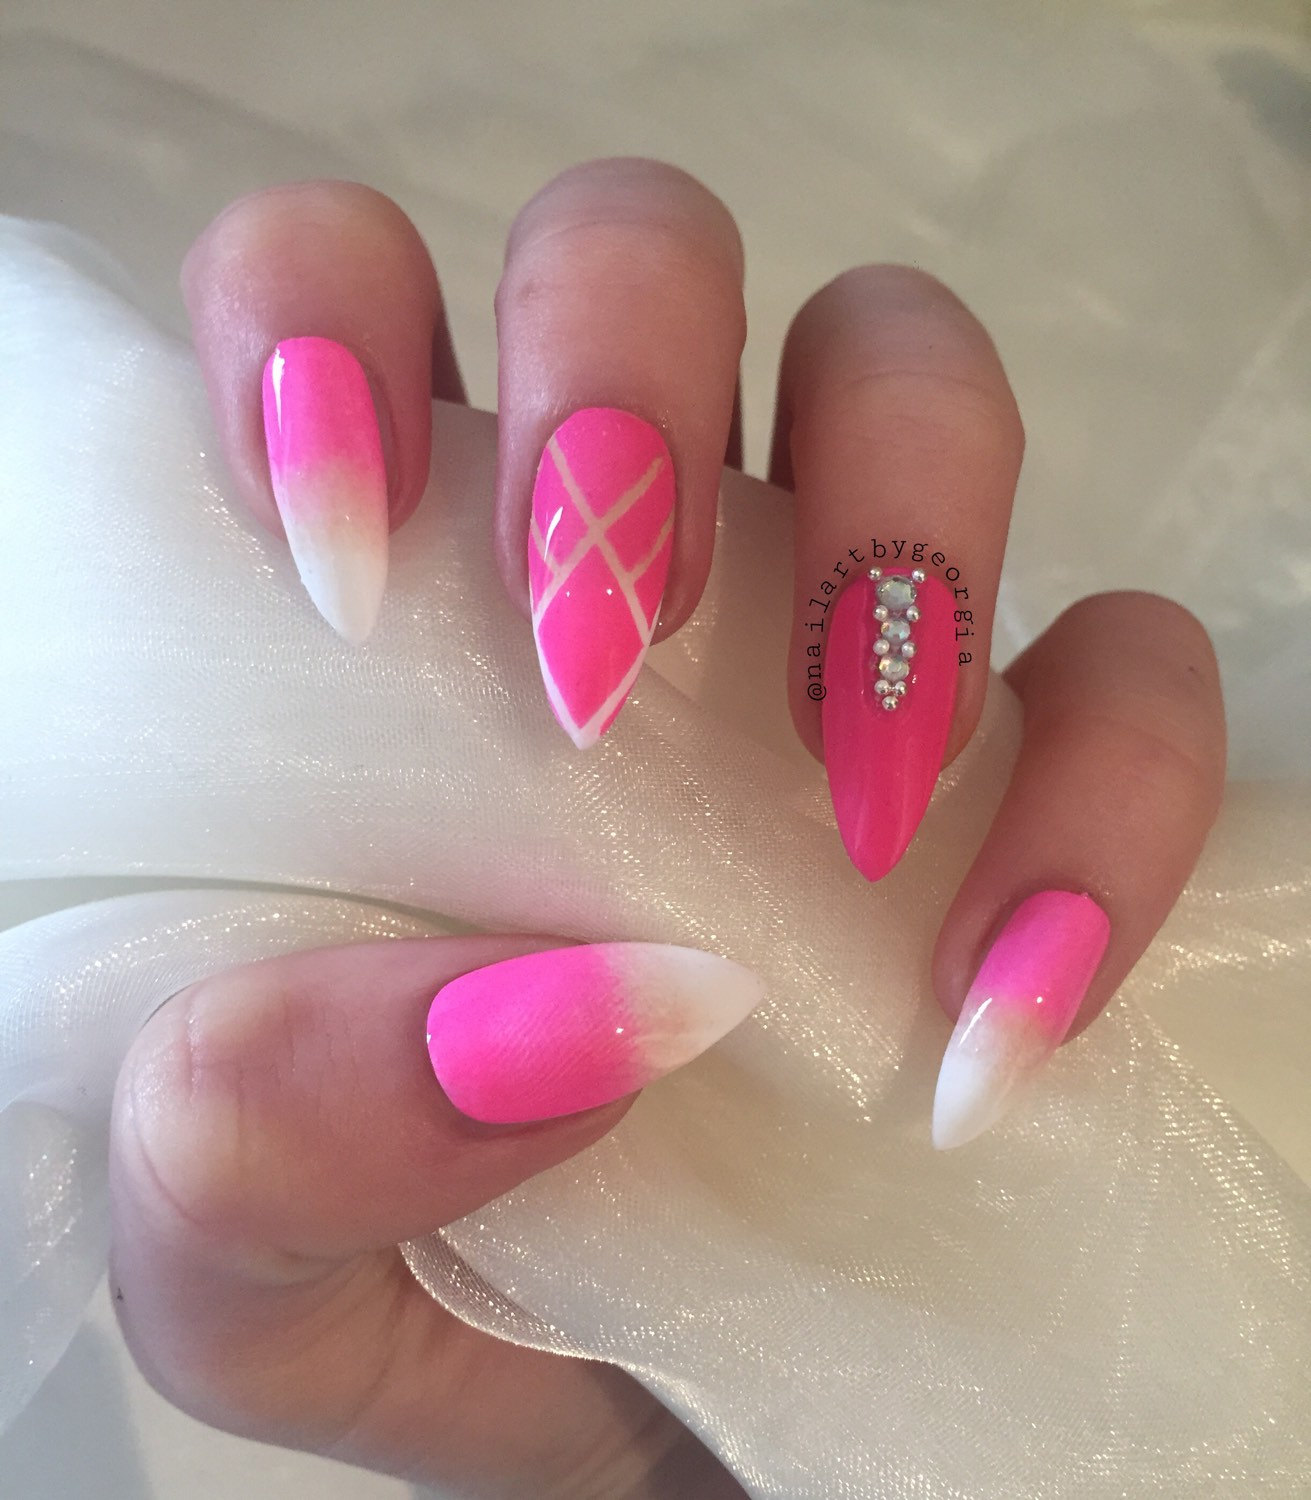 Pink and white acrylic nails - Expression Nails